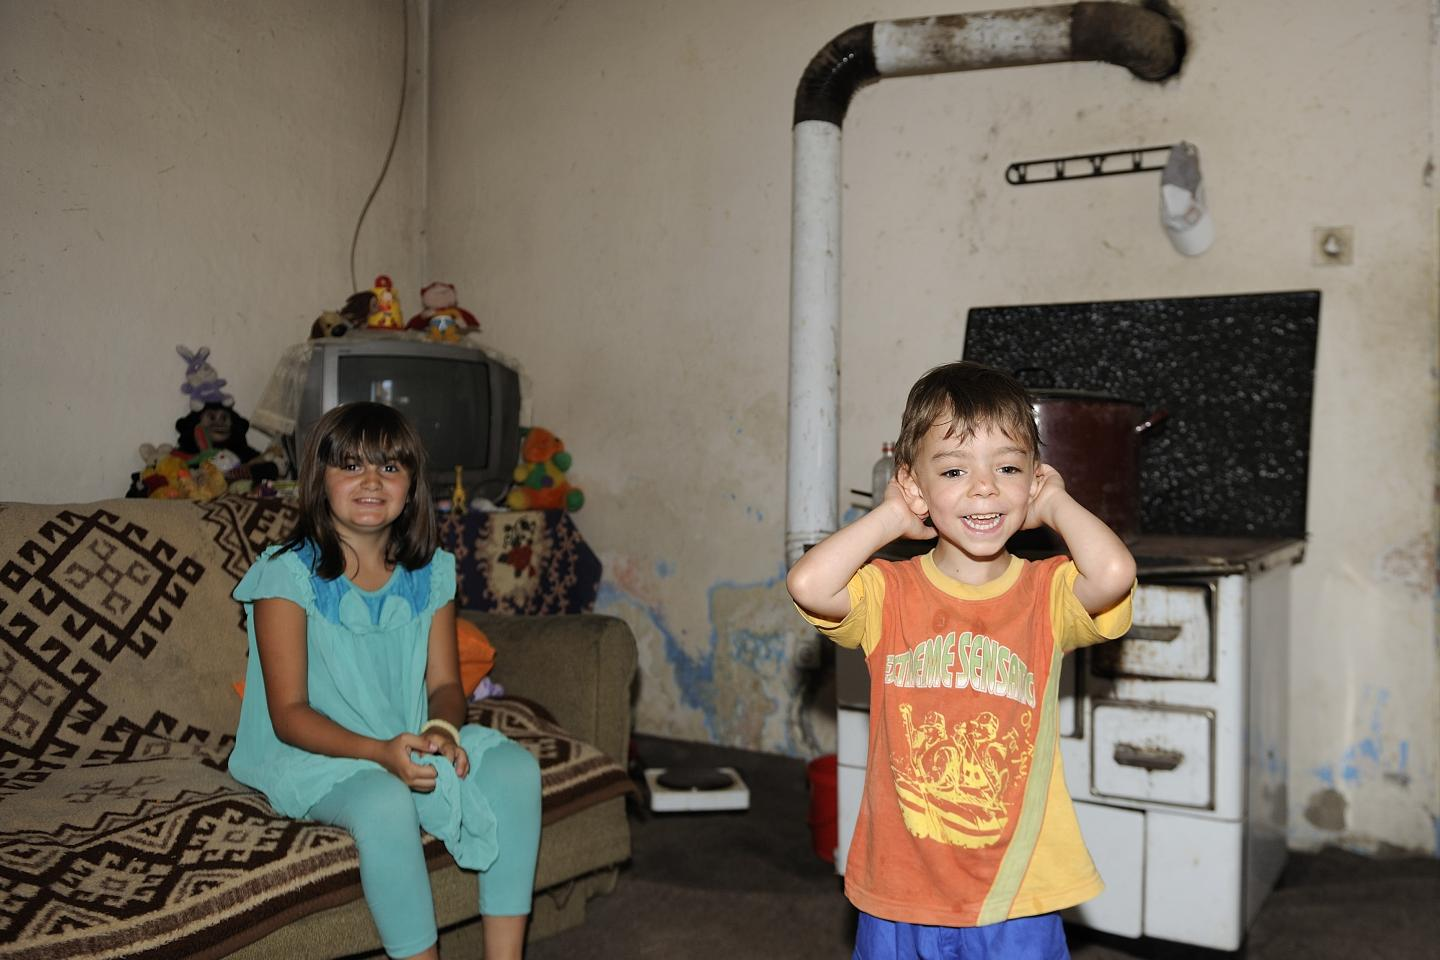 David (4) and his sister Aleksandra (9) playing in their home